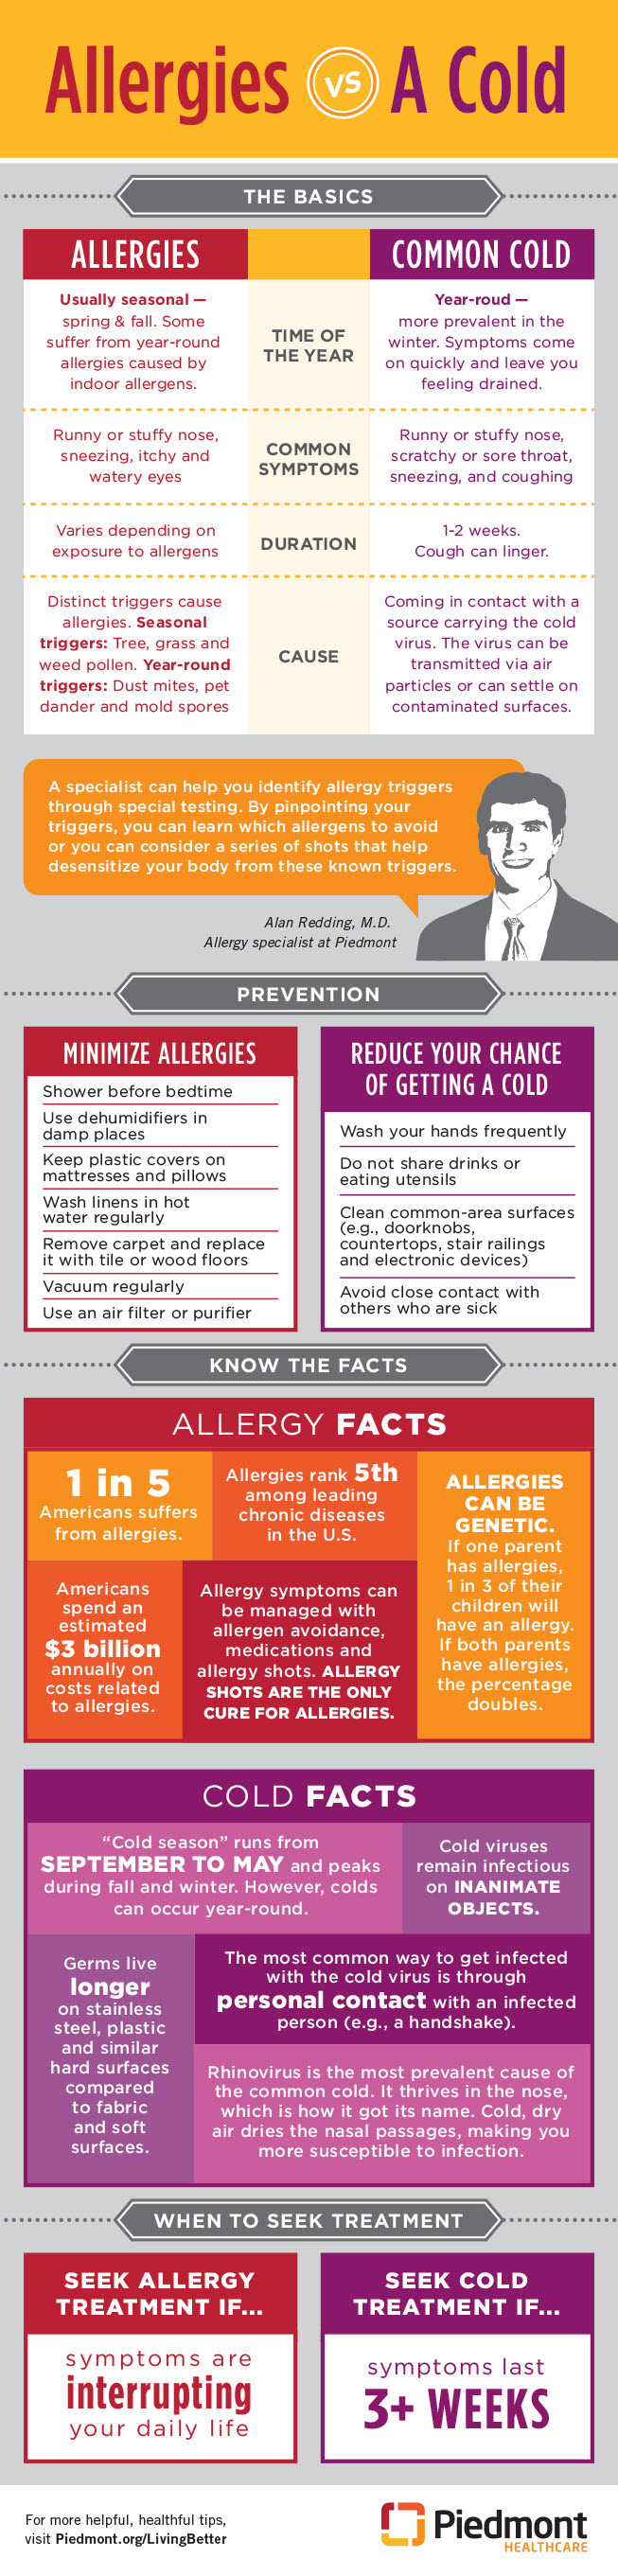 Allergies vs. a cold